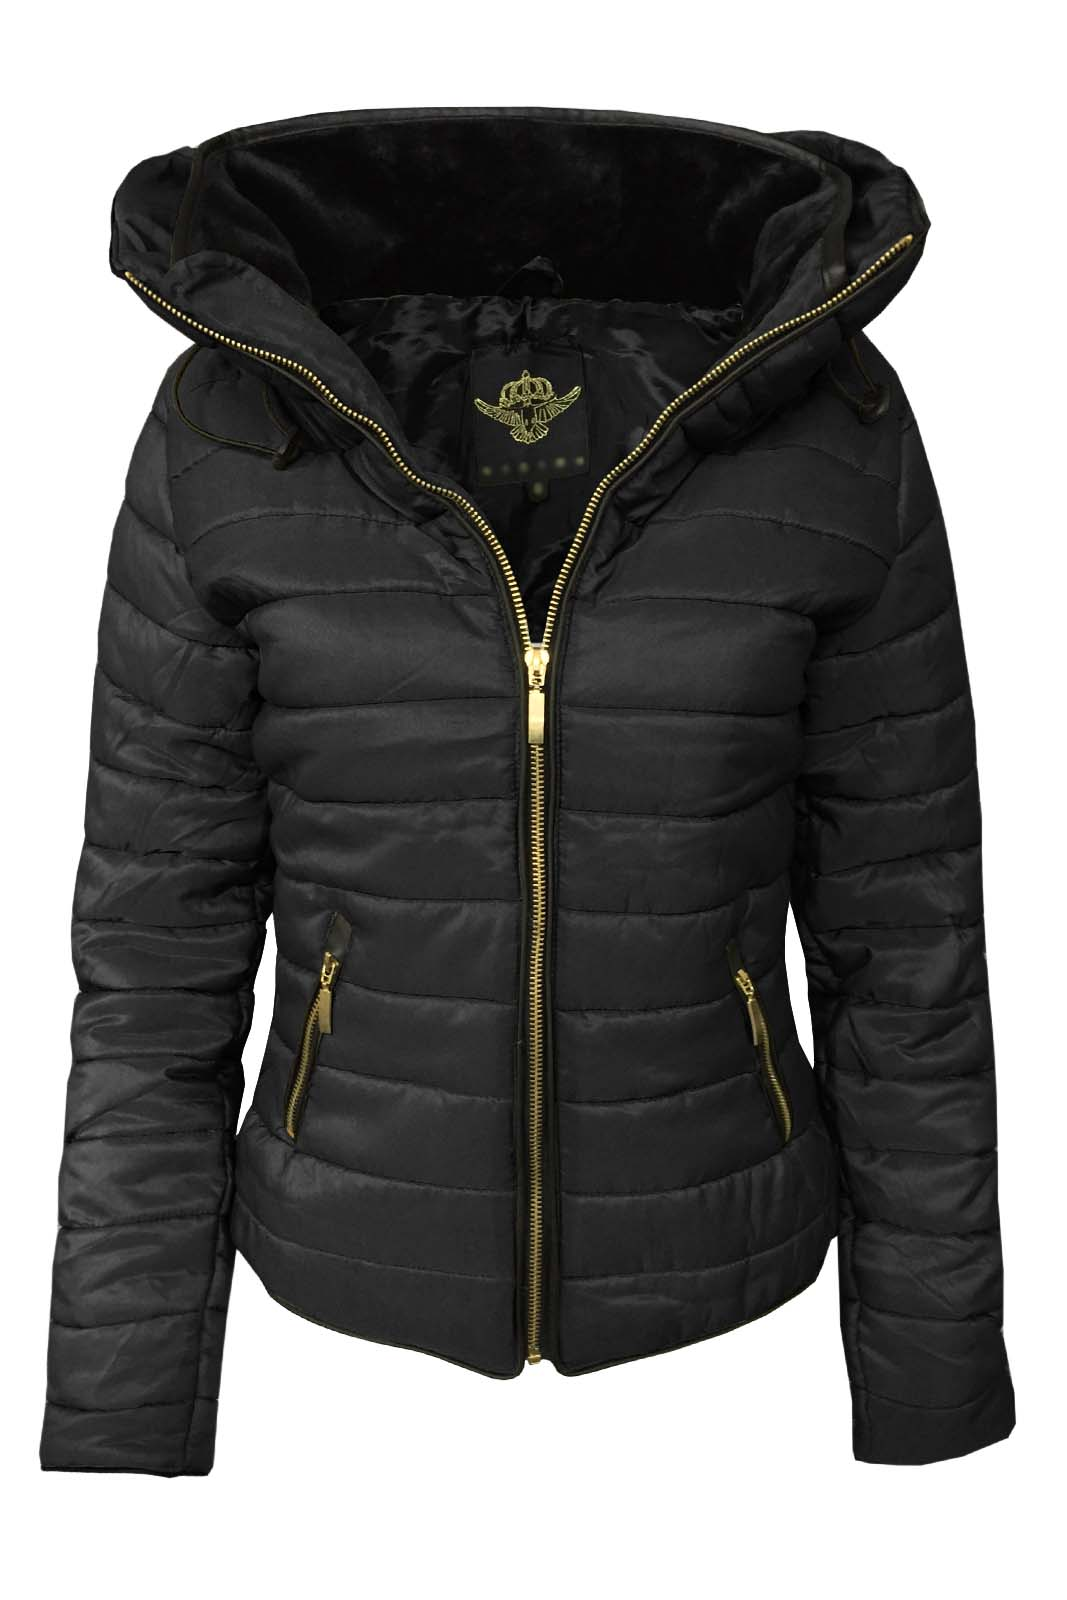 Fab Style Womens Puffer Bomber Jacket Quilted Padded Zip